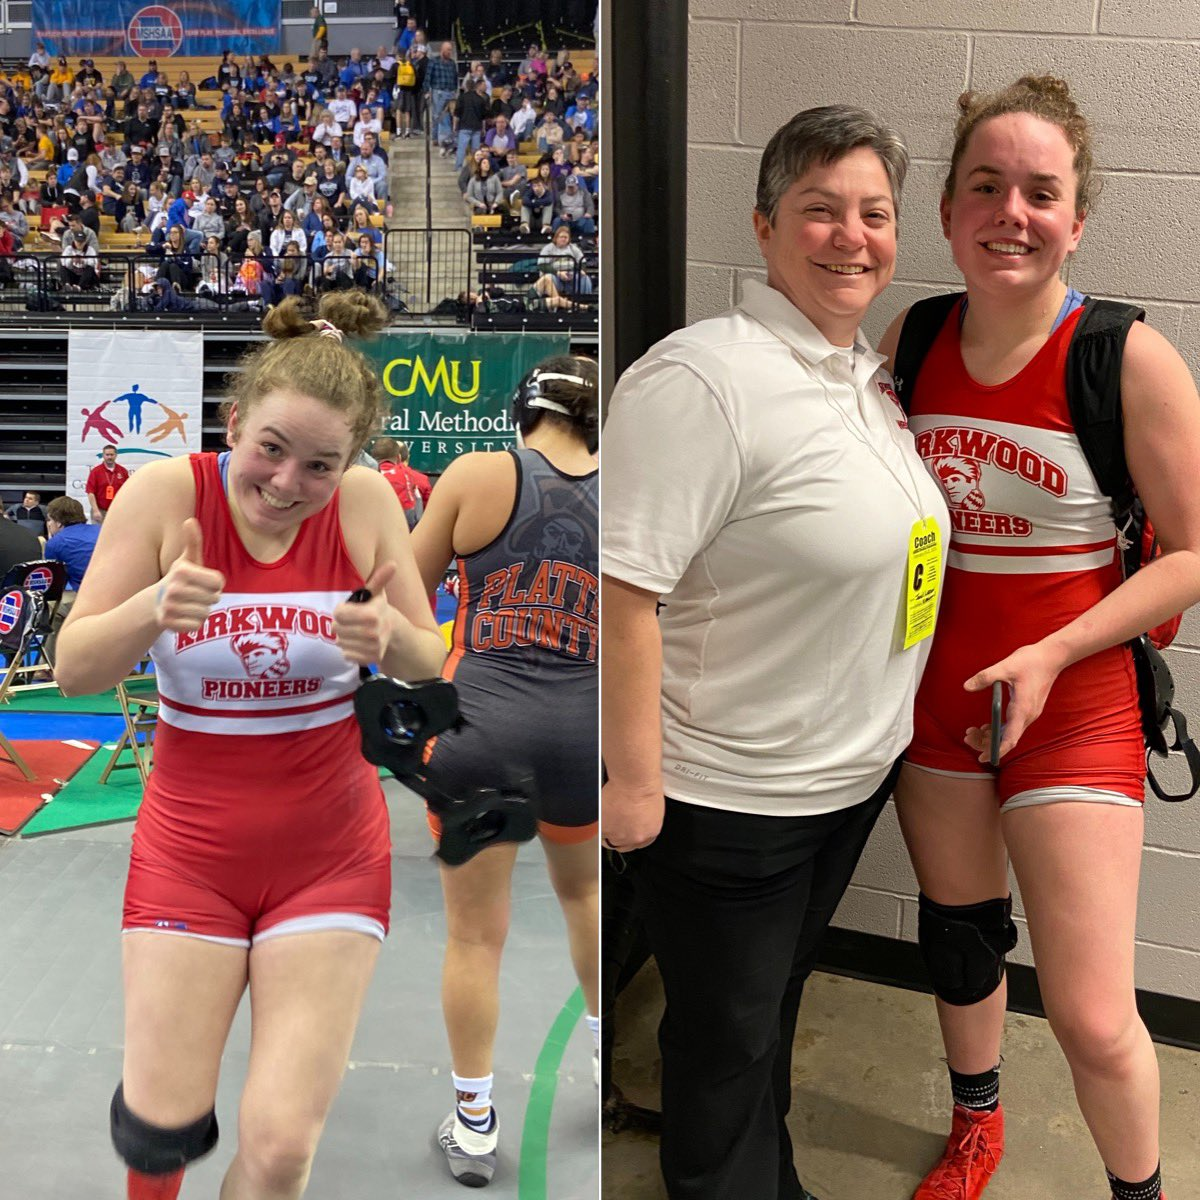 After a disappointing loss in the semifinals, Emma Schreiber bounces back to win by pin her next two matches and finishes in 3rd place!  Way to go, Emma! #HERstory #HERo #FIGHTpic.twitter.com/2a8zKmQl48